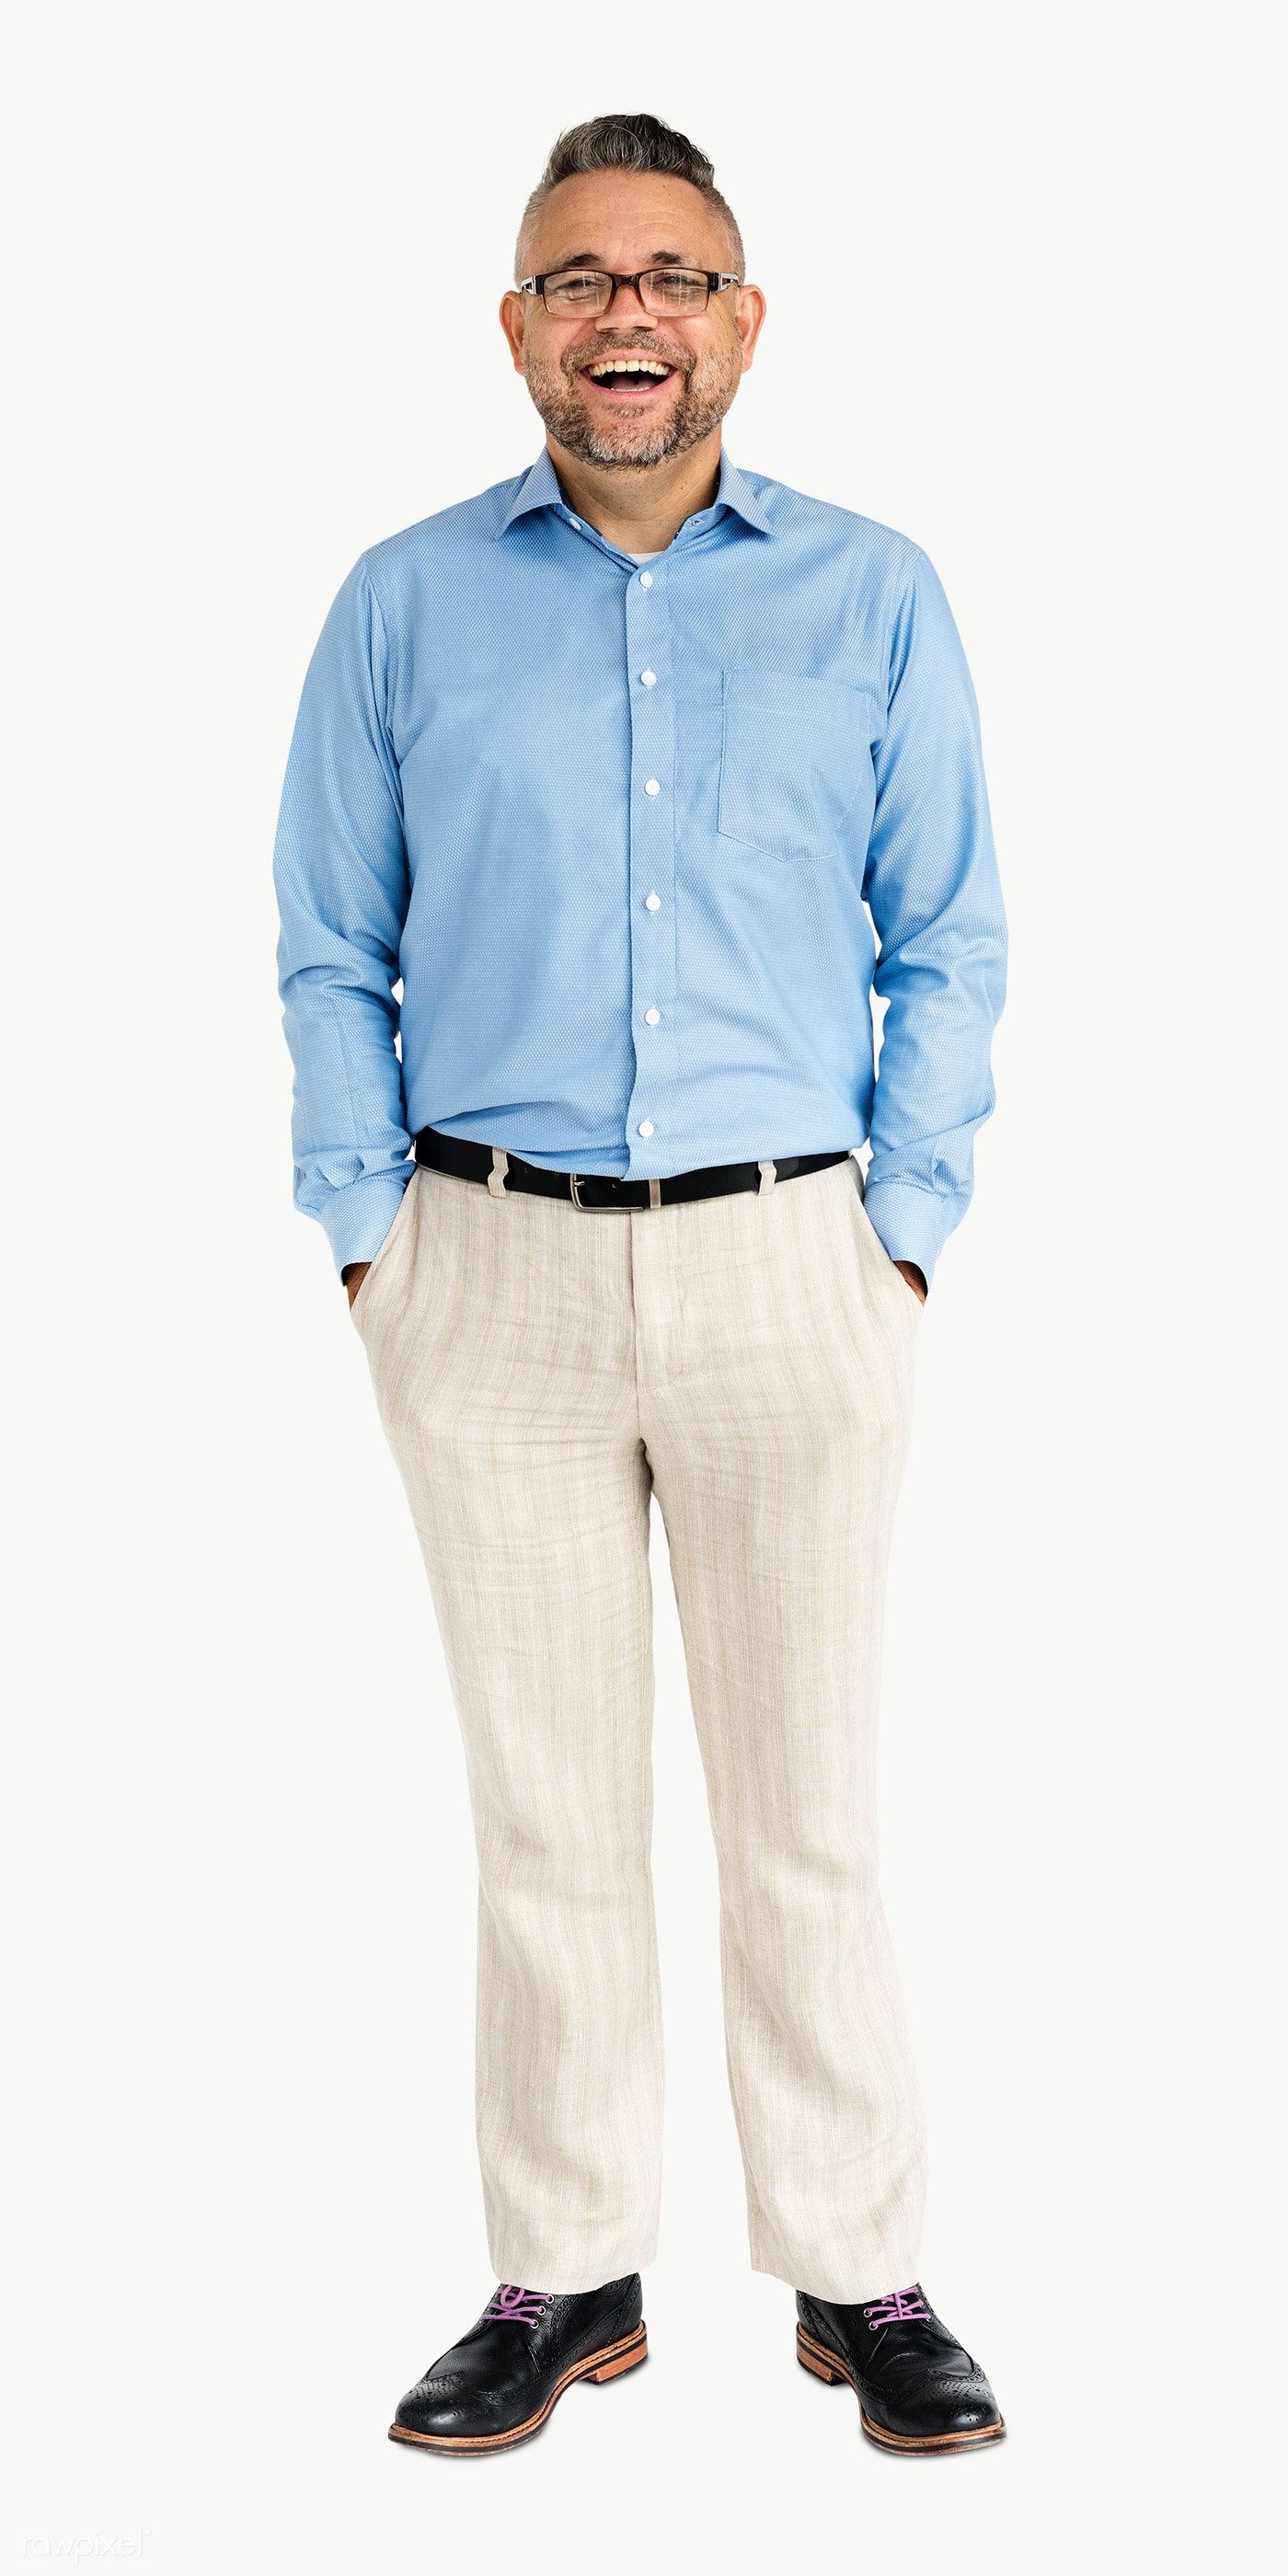 Download Premium Png Of Happy Businessman Standing With His Hands In The Business Man People Png Young Black